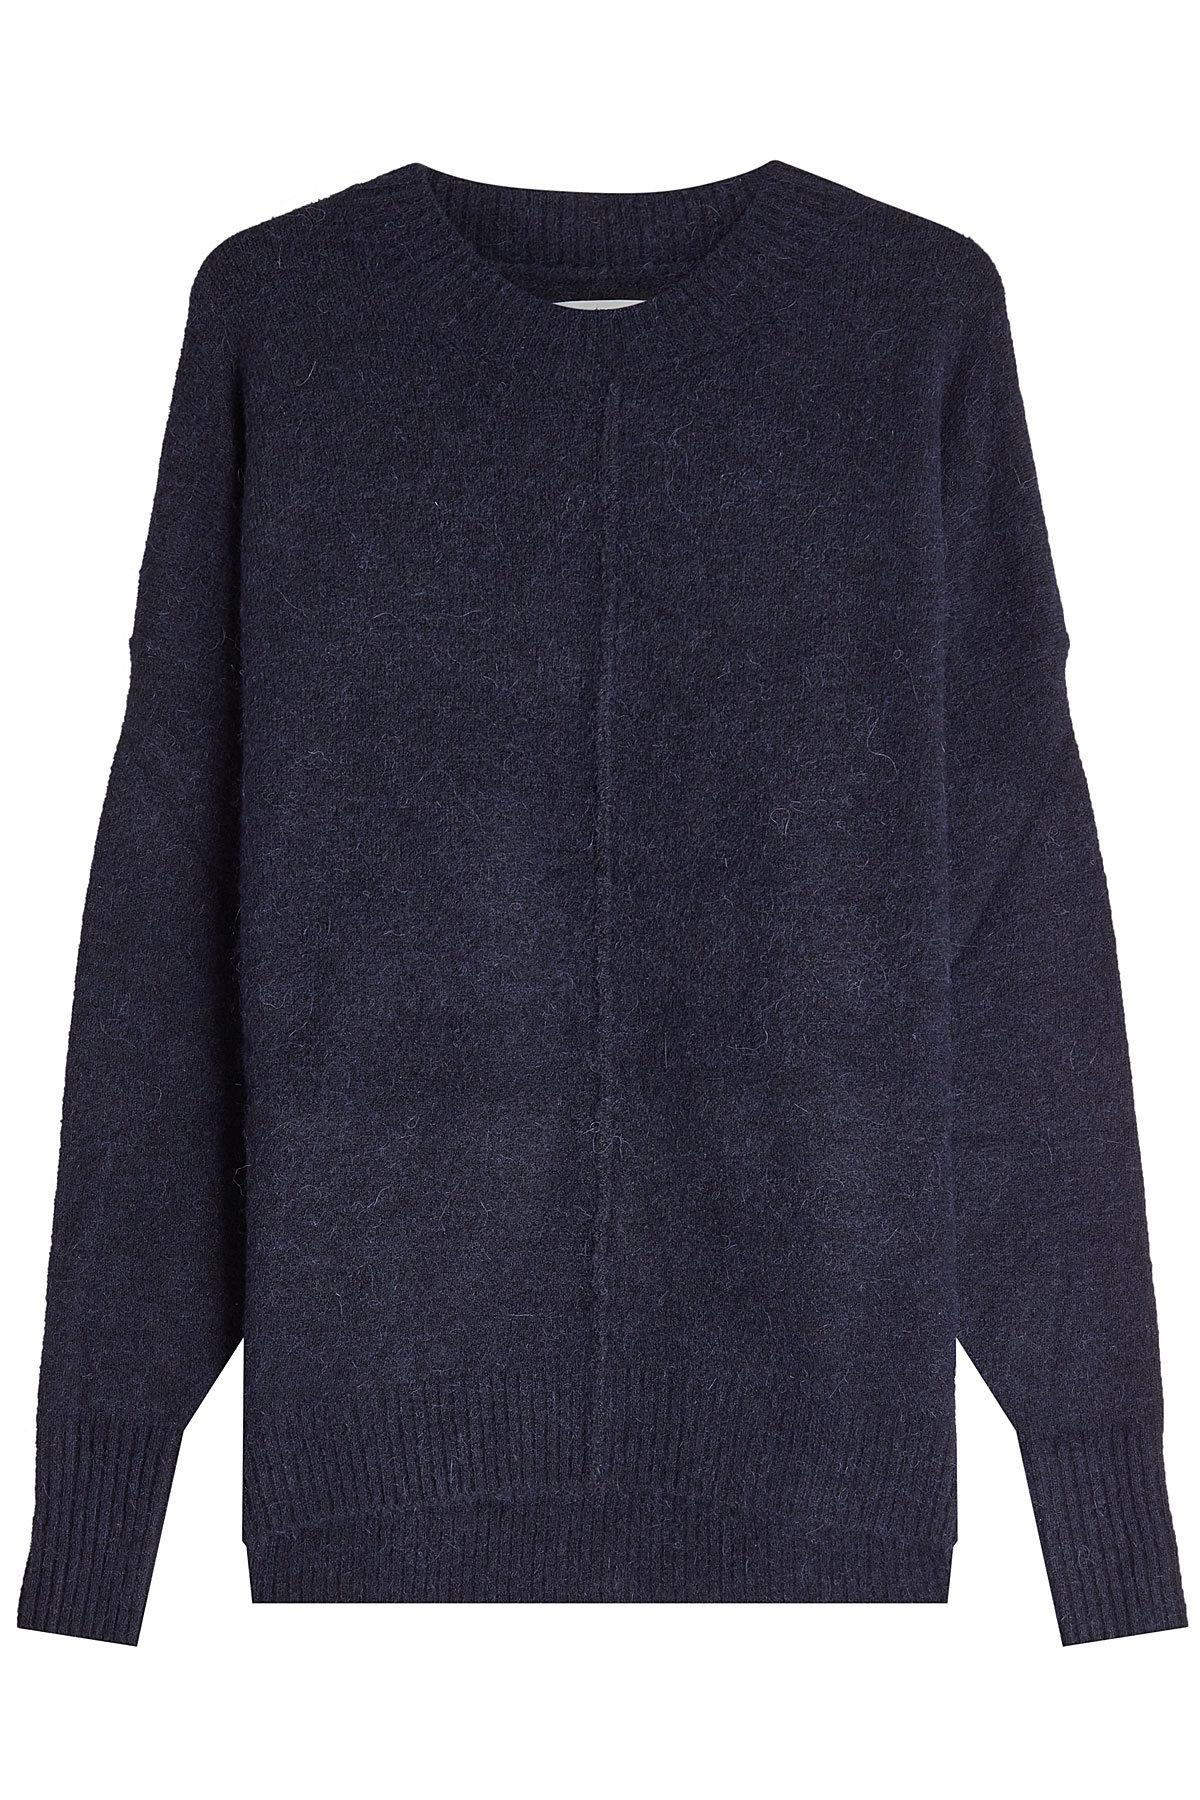 Etoile Isabel Marant Pullover With Alpaca And Wool In Blue